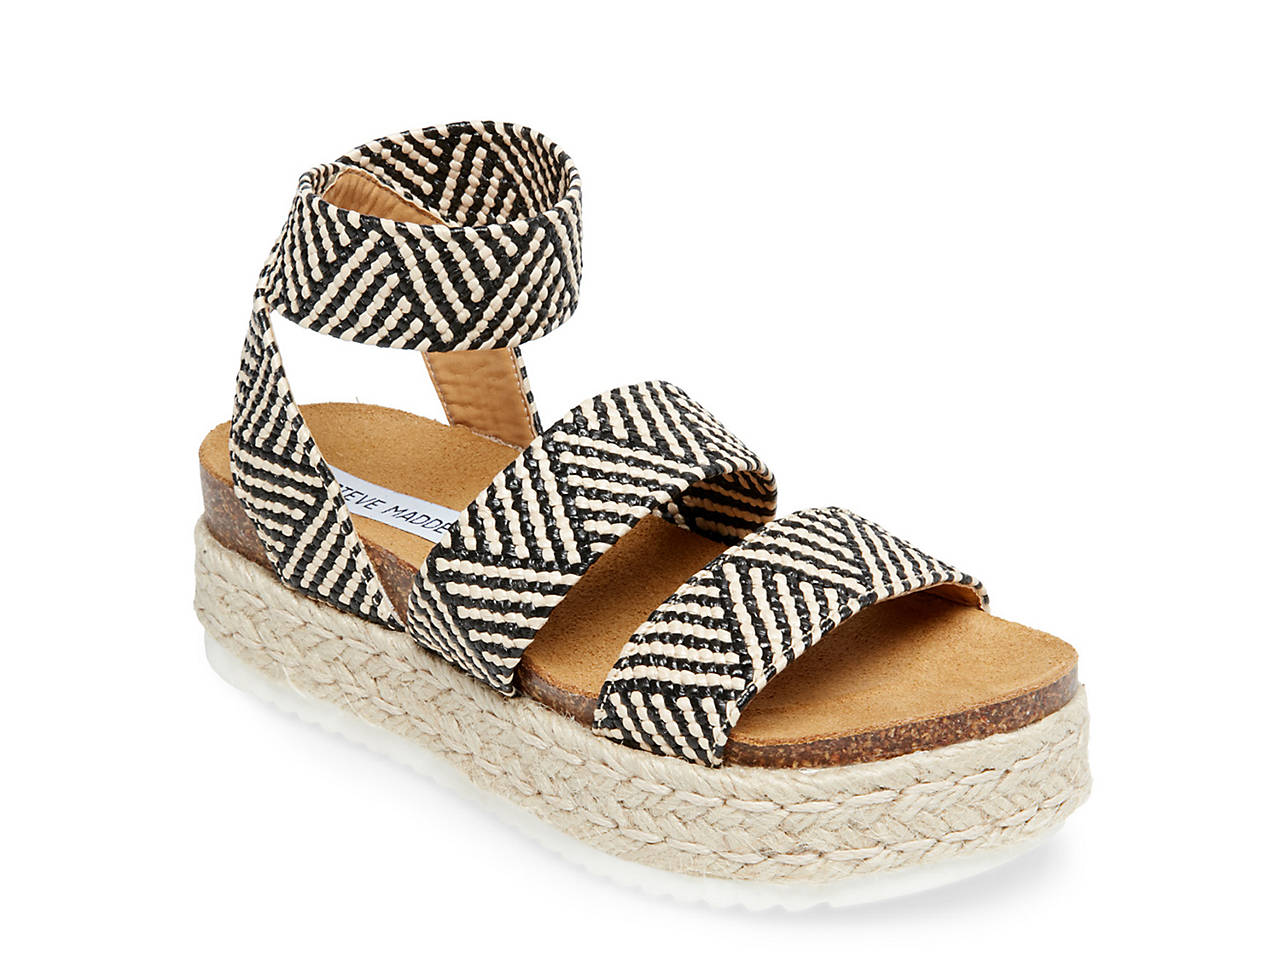 305b8055f61a Steve Madden Kimmie Espadrille Wedge Sandal Women s Shoes